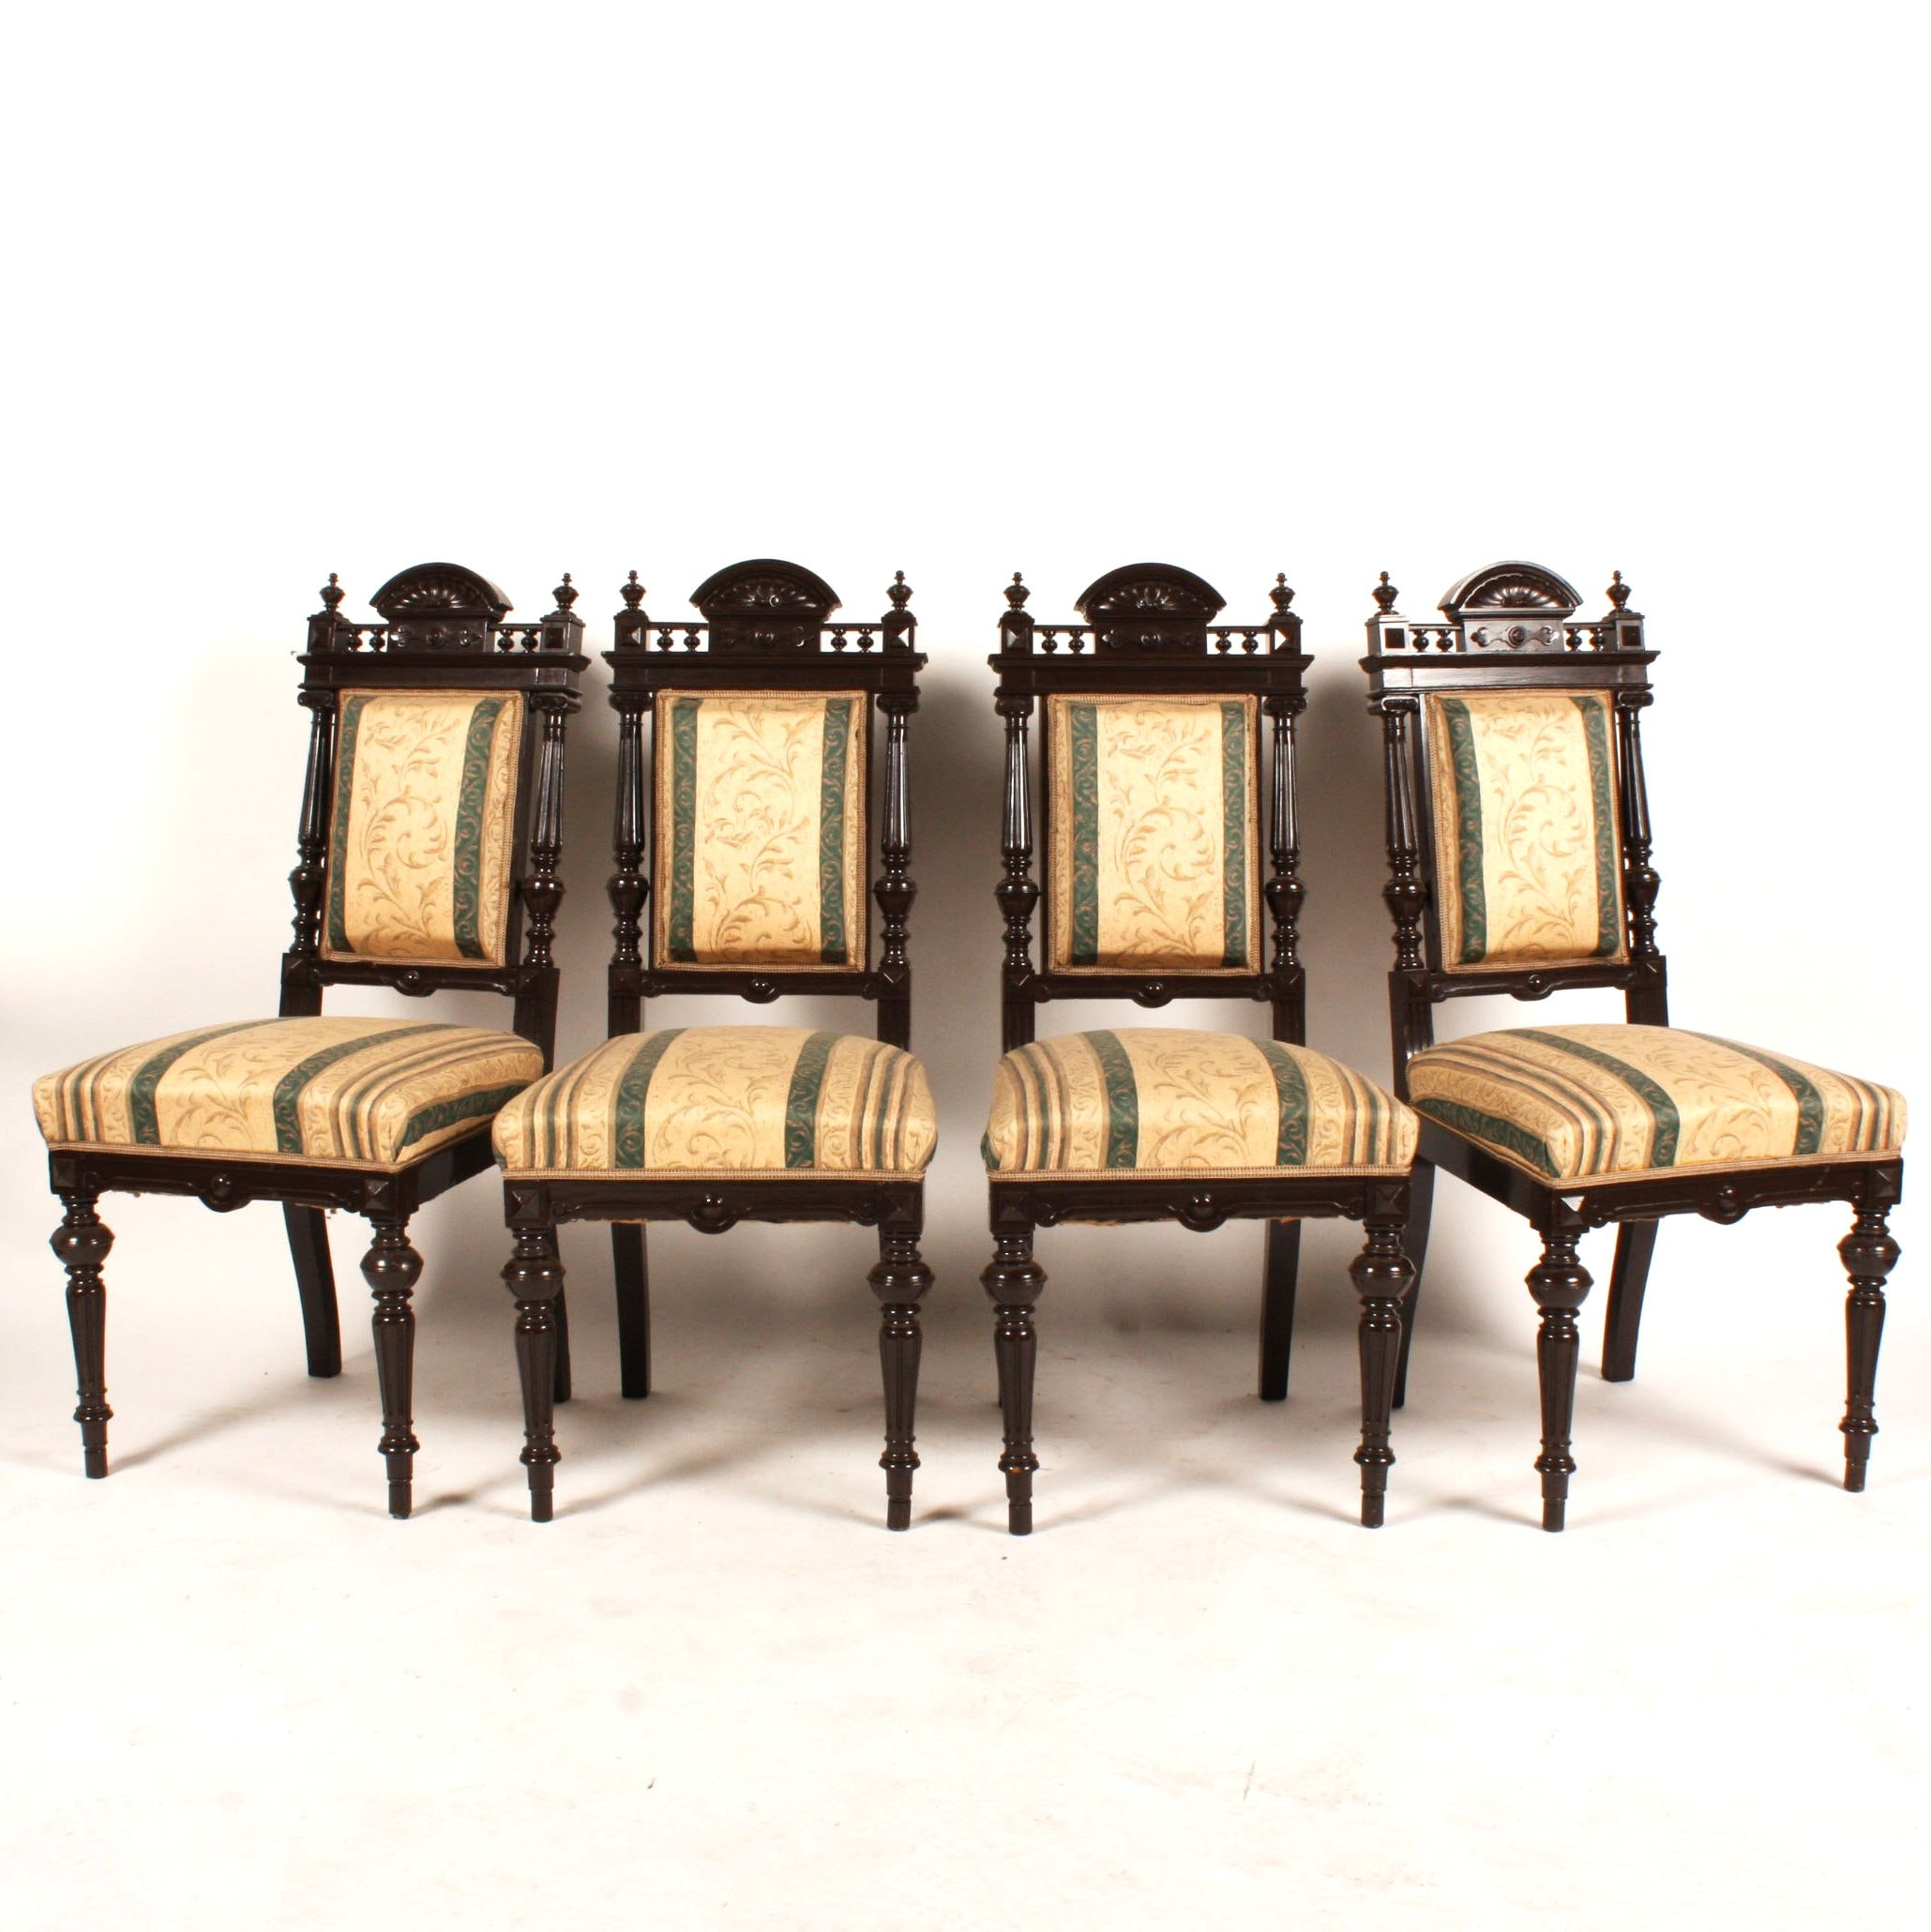 Four Antique European Baroque Style Chairs